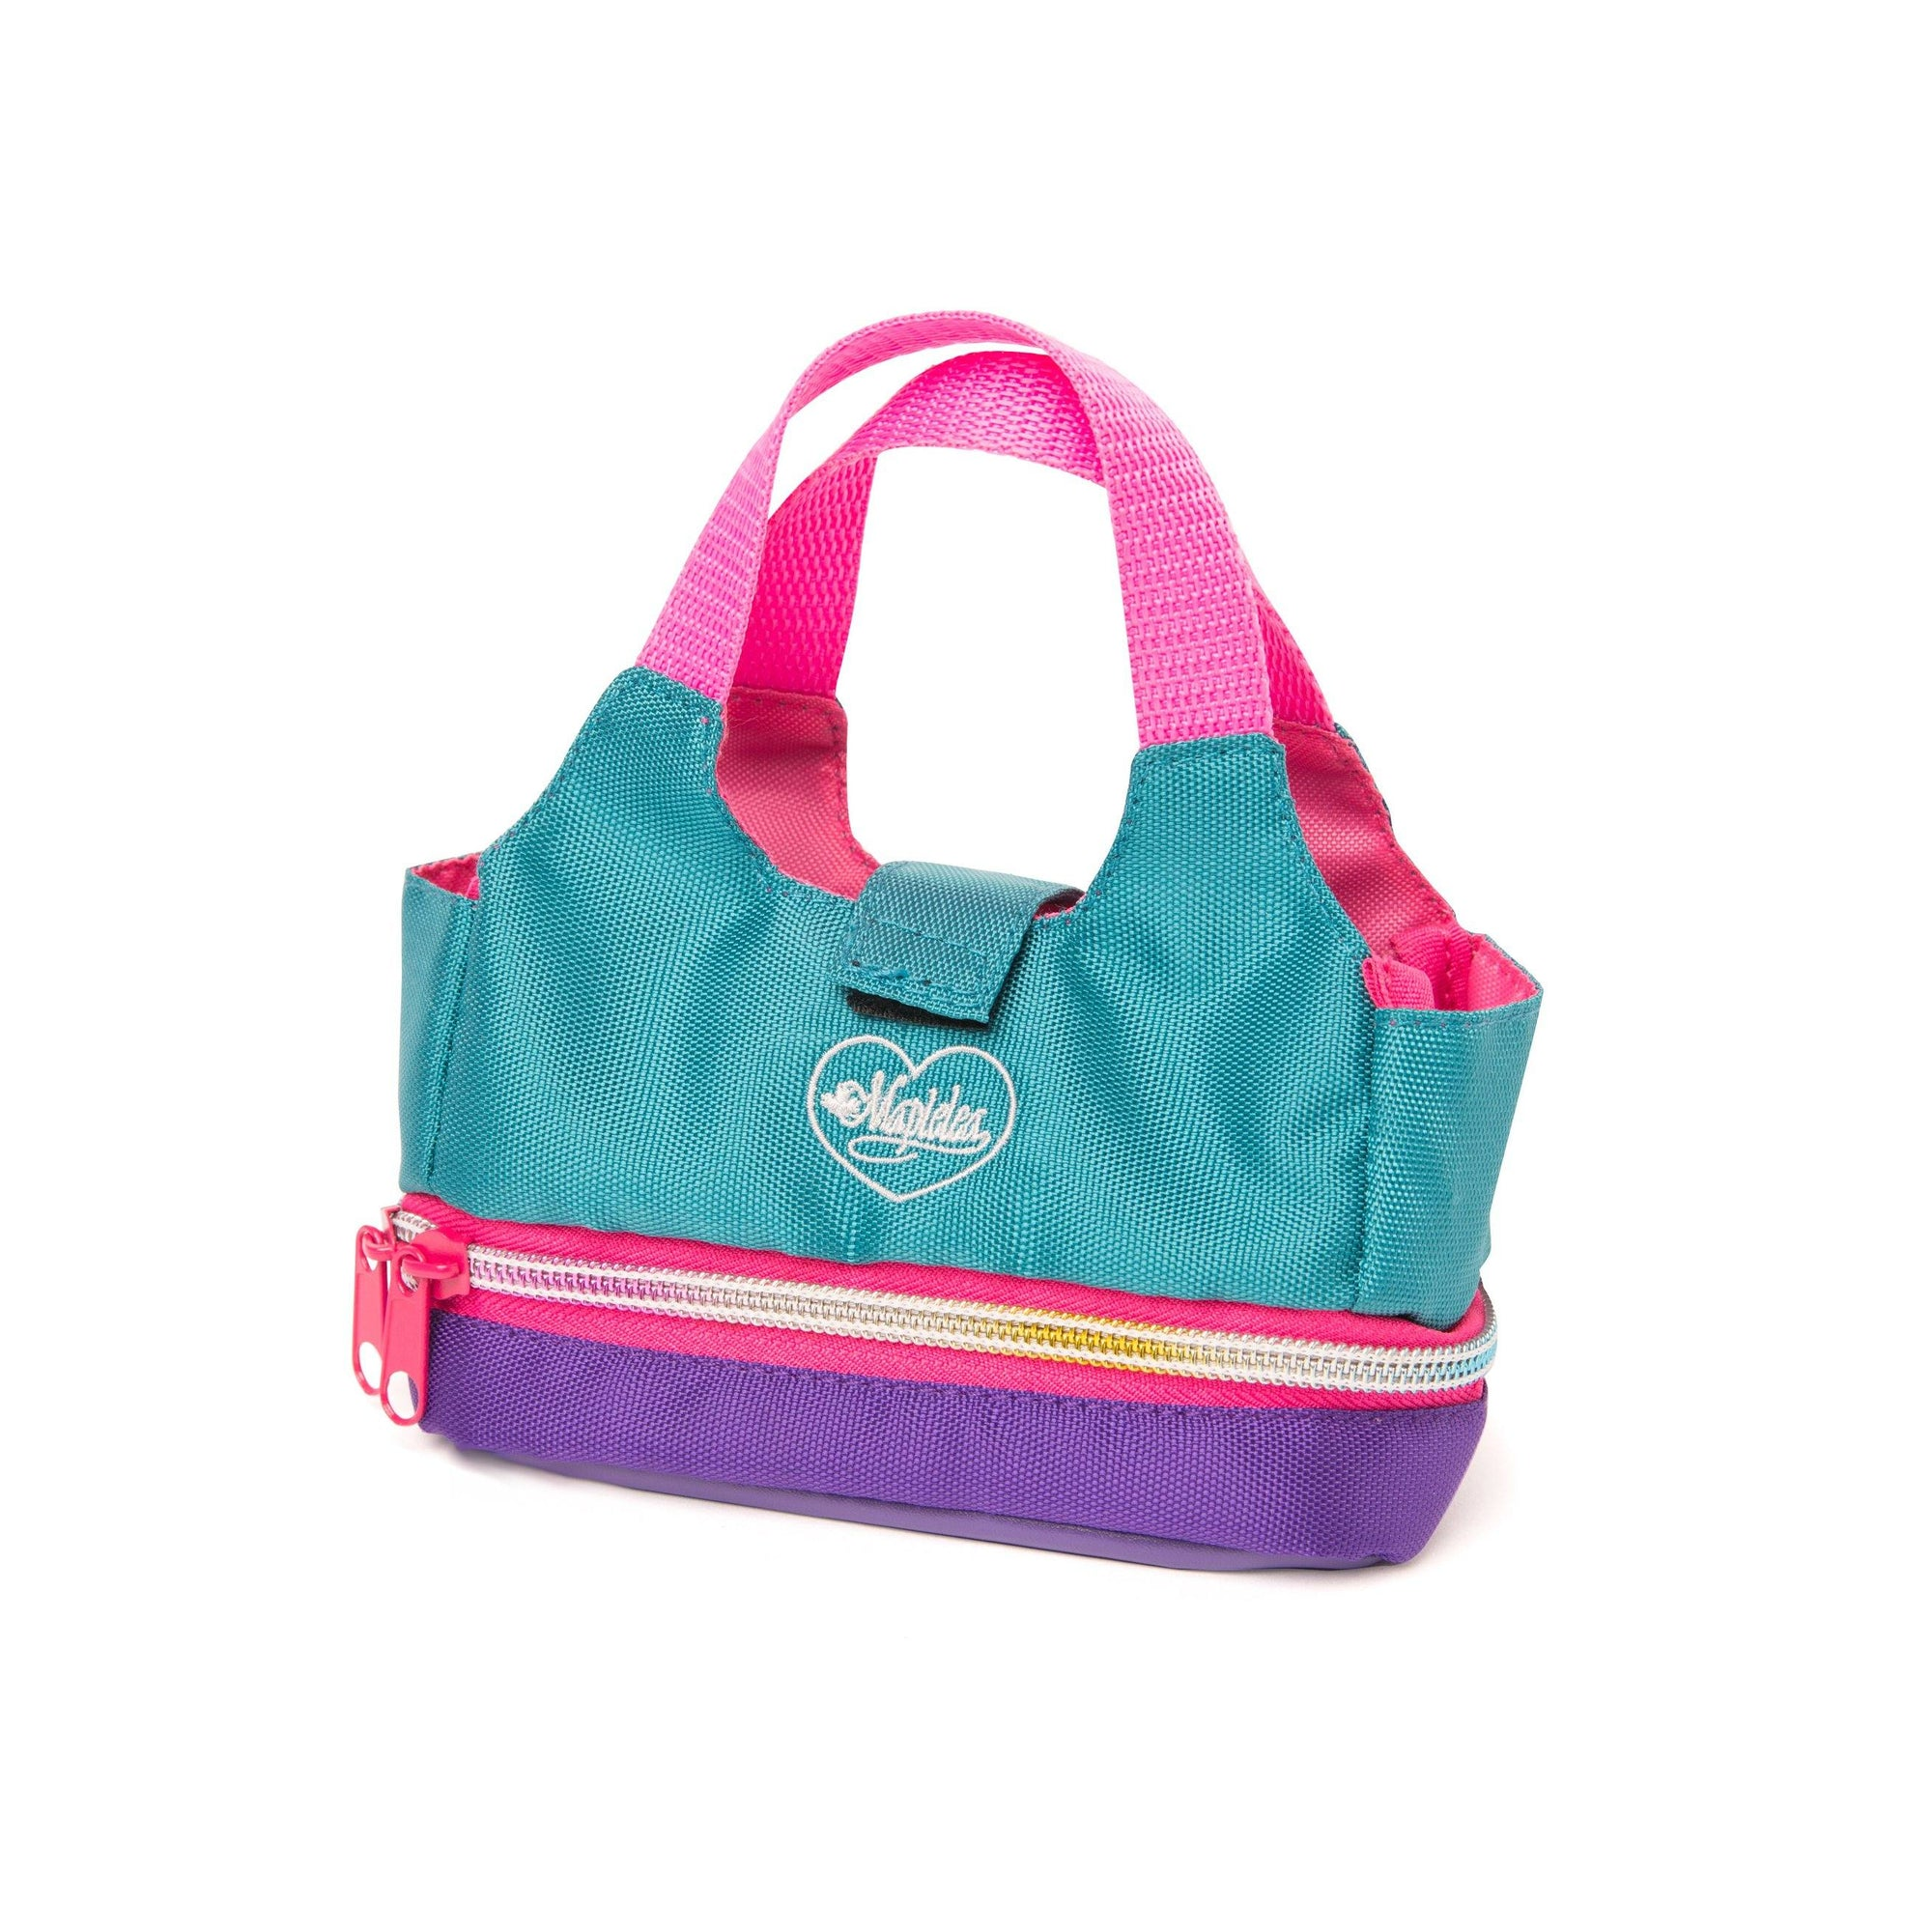 Mini tote for doll in teal, pink and green with Maplelea embroidered logo. Fits all 18 inch dolls.